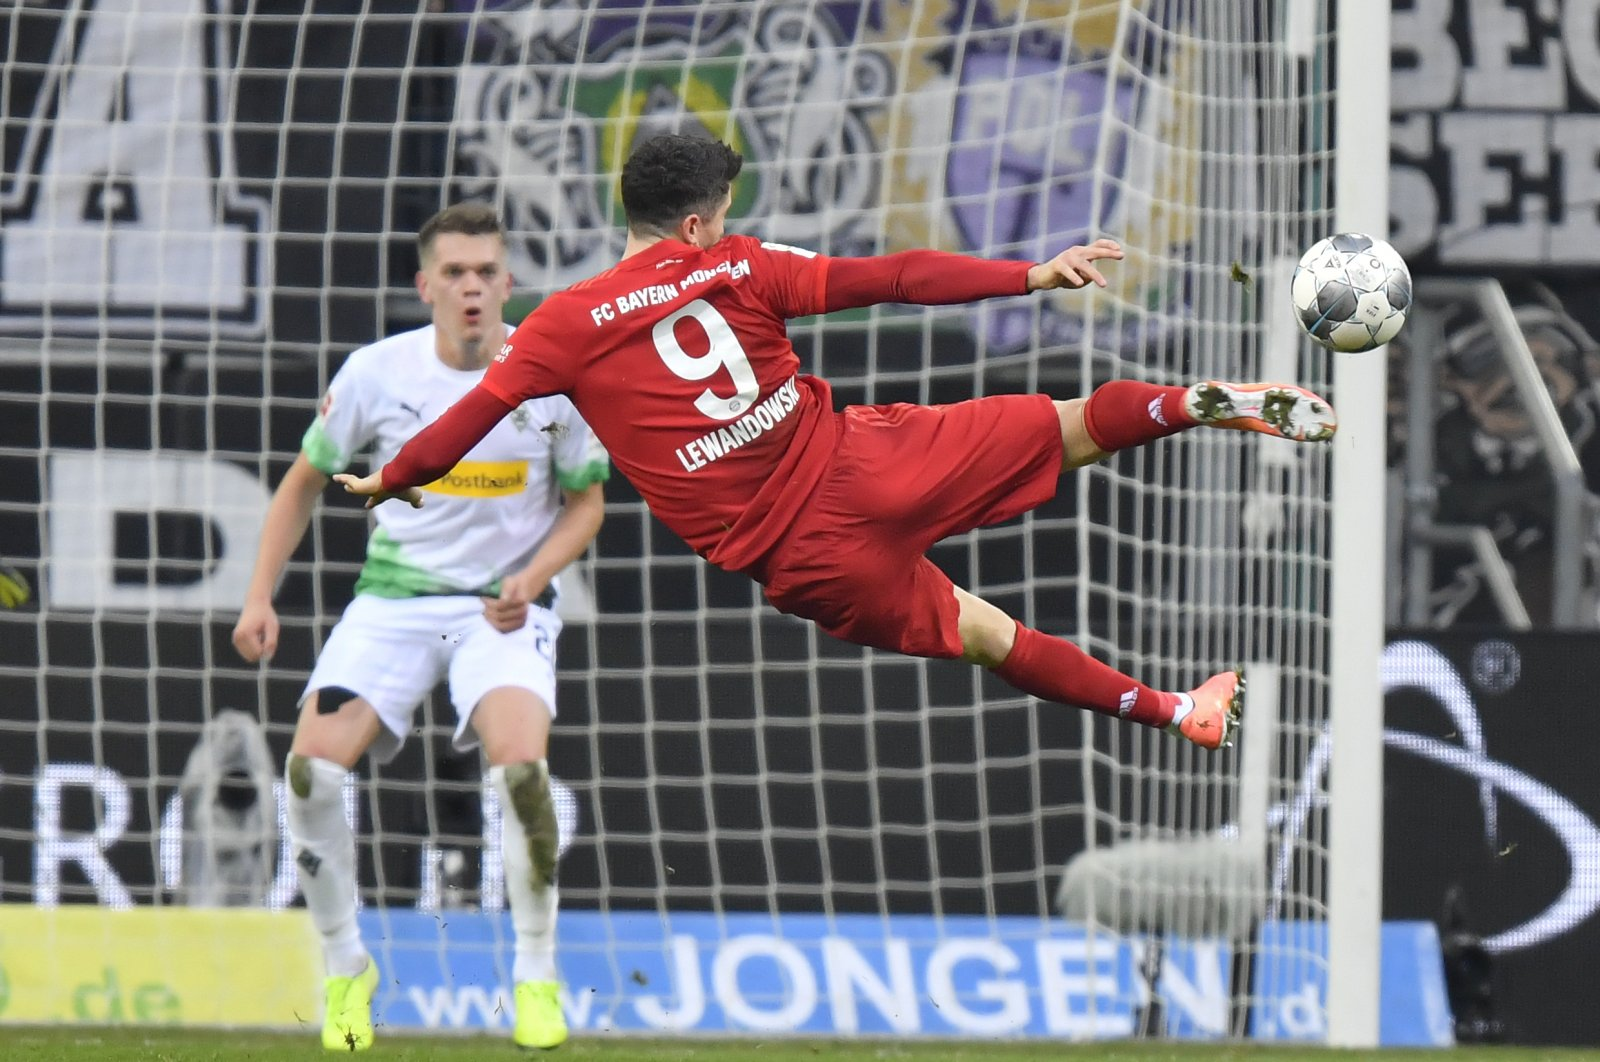 Bayern's Robert Lewandowski attempts a shot at the goal during a Bundesliga match in Moenchengladbach, Germany, Dec. 7, 2019. (AP Photo)